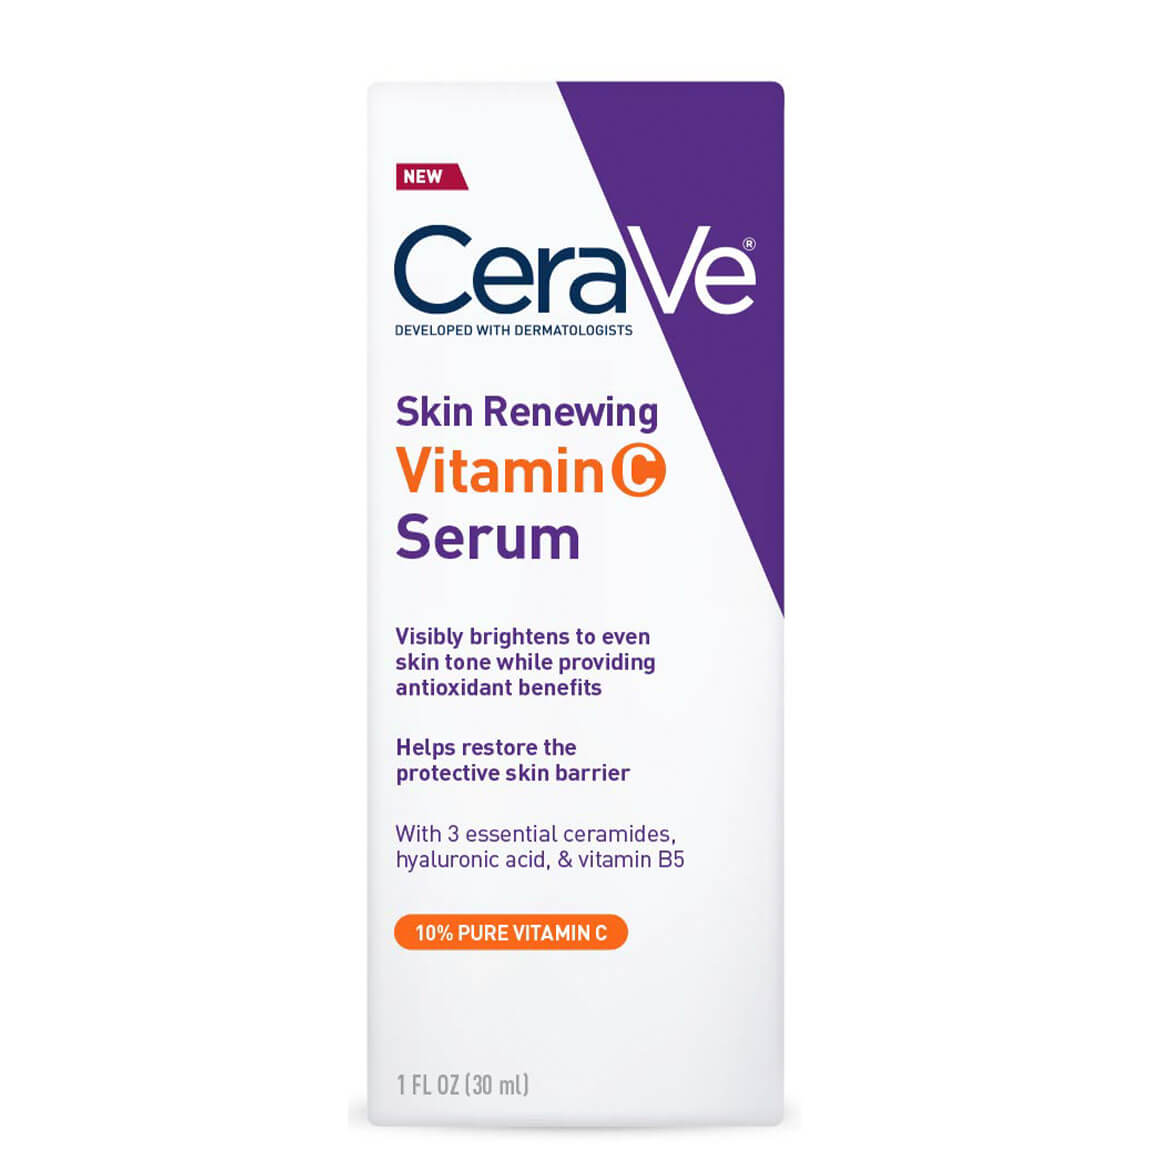 Cerave Skin Renewing Vitamin C Serum 30ml